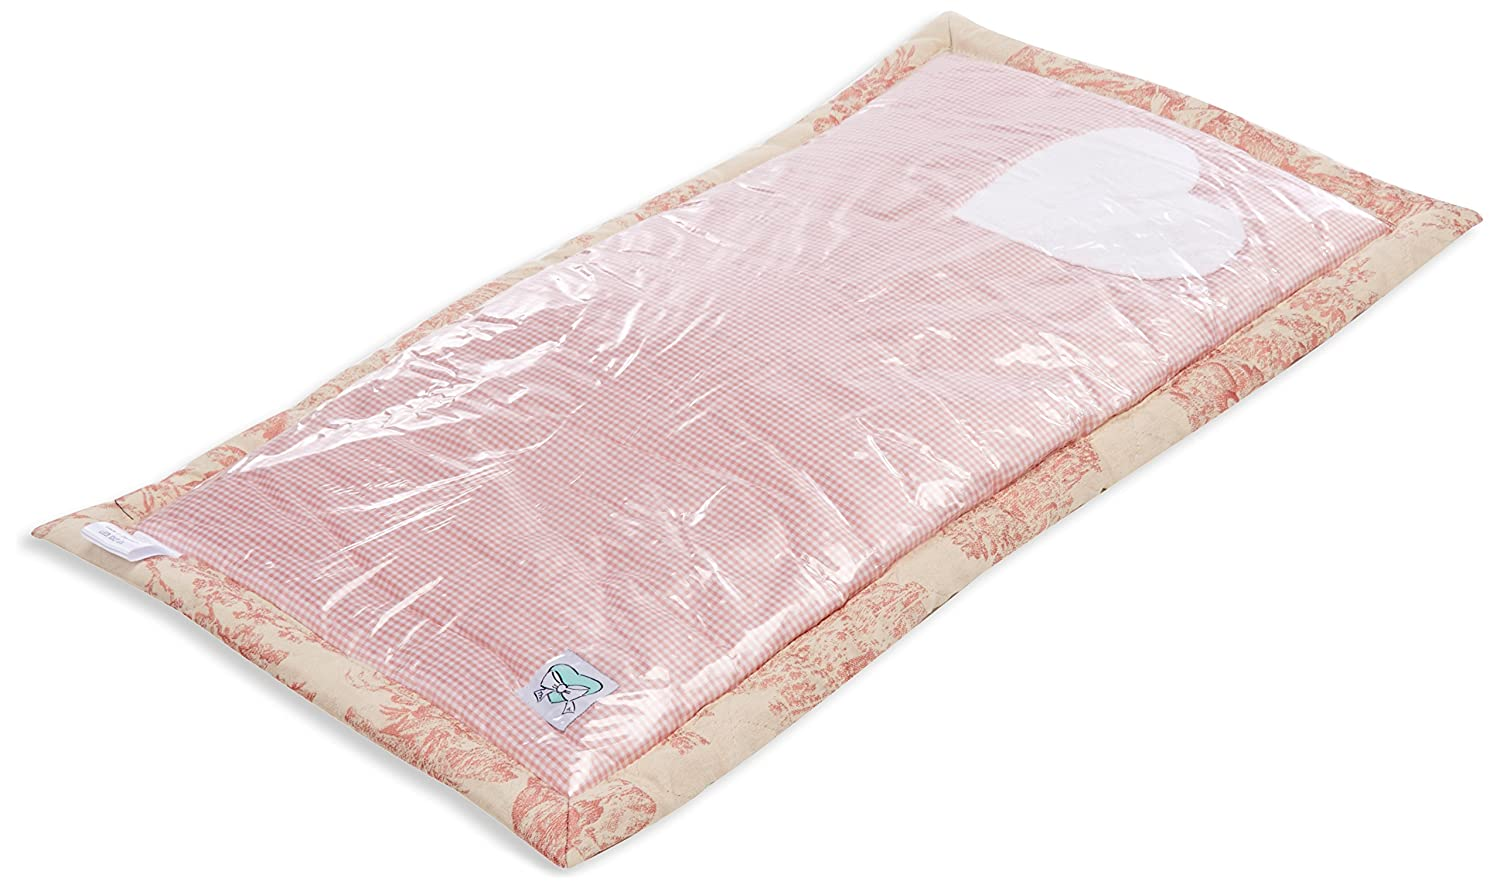 Therese Accessoires Pompadour Changing Pad (30 x 26 cm, Pink)